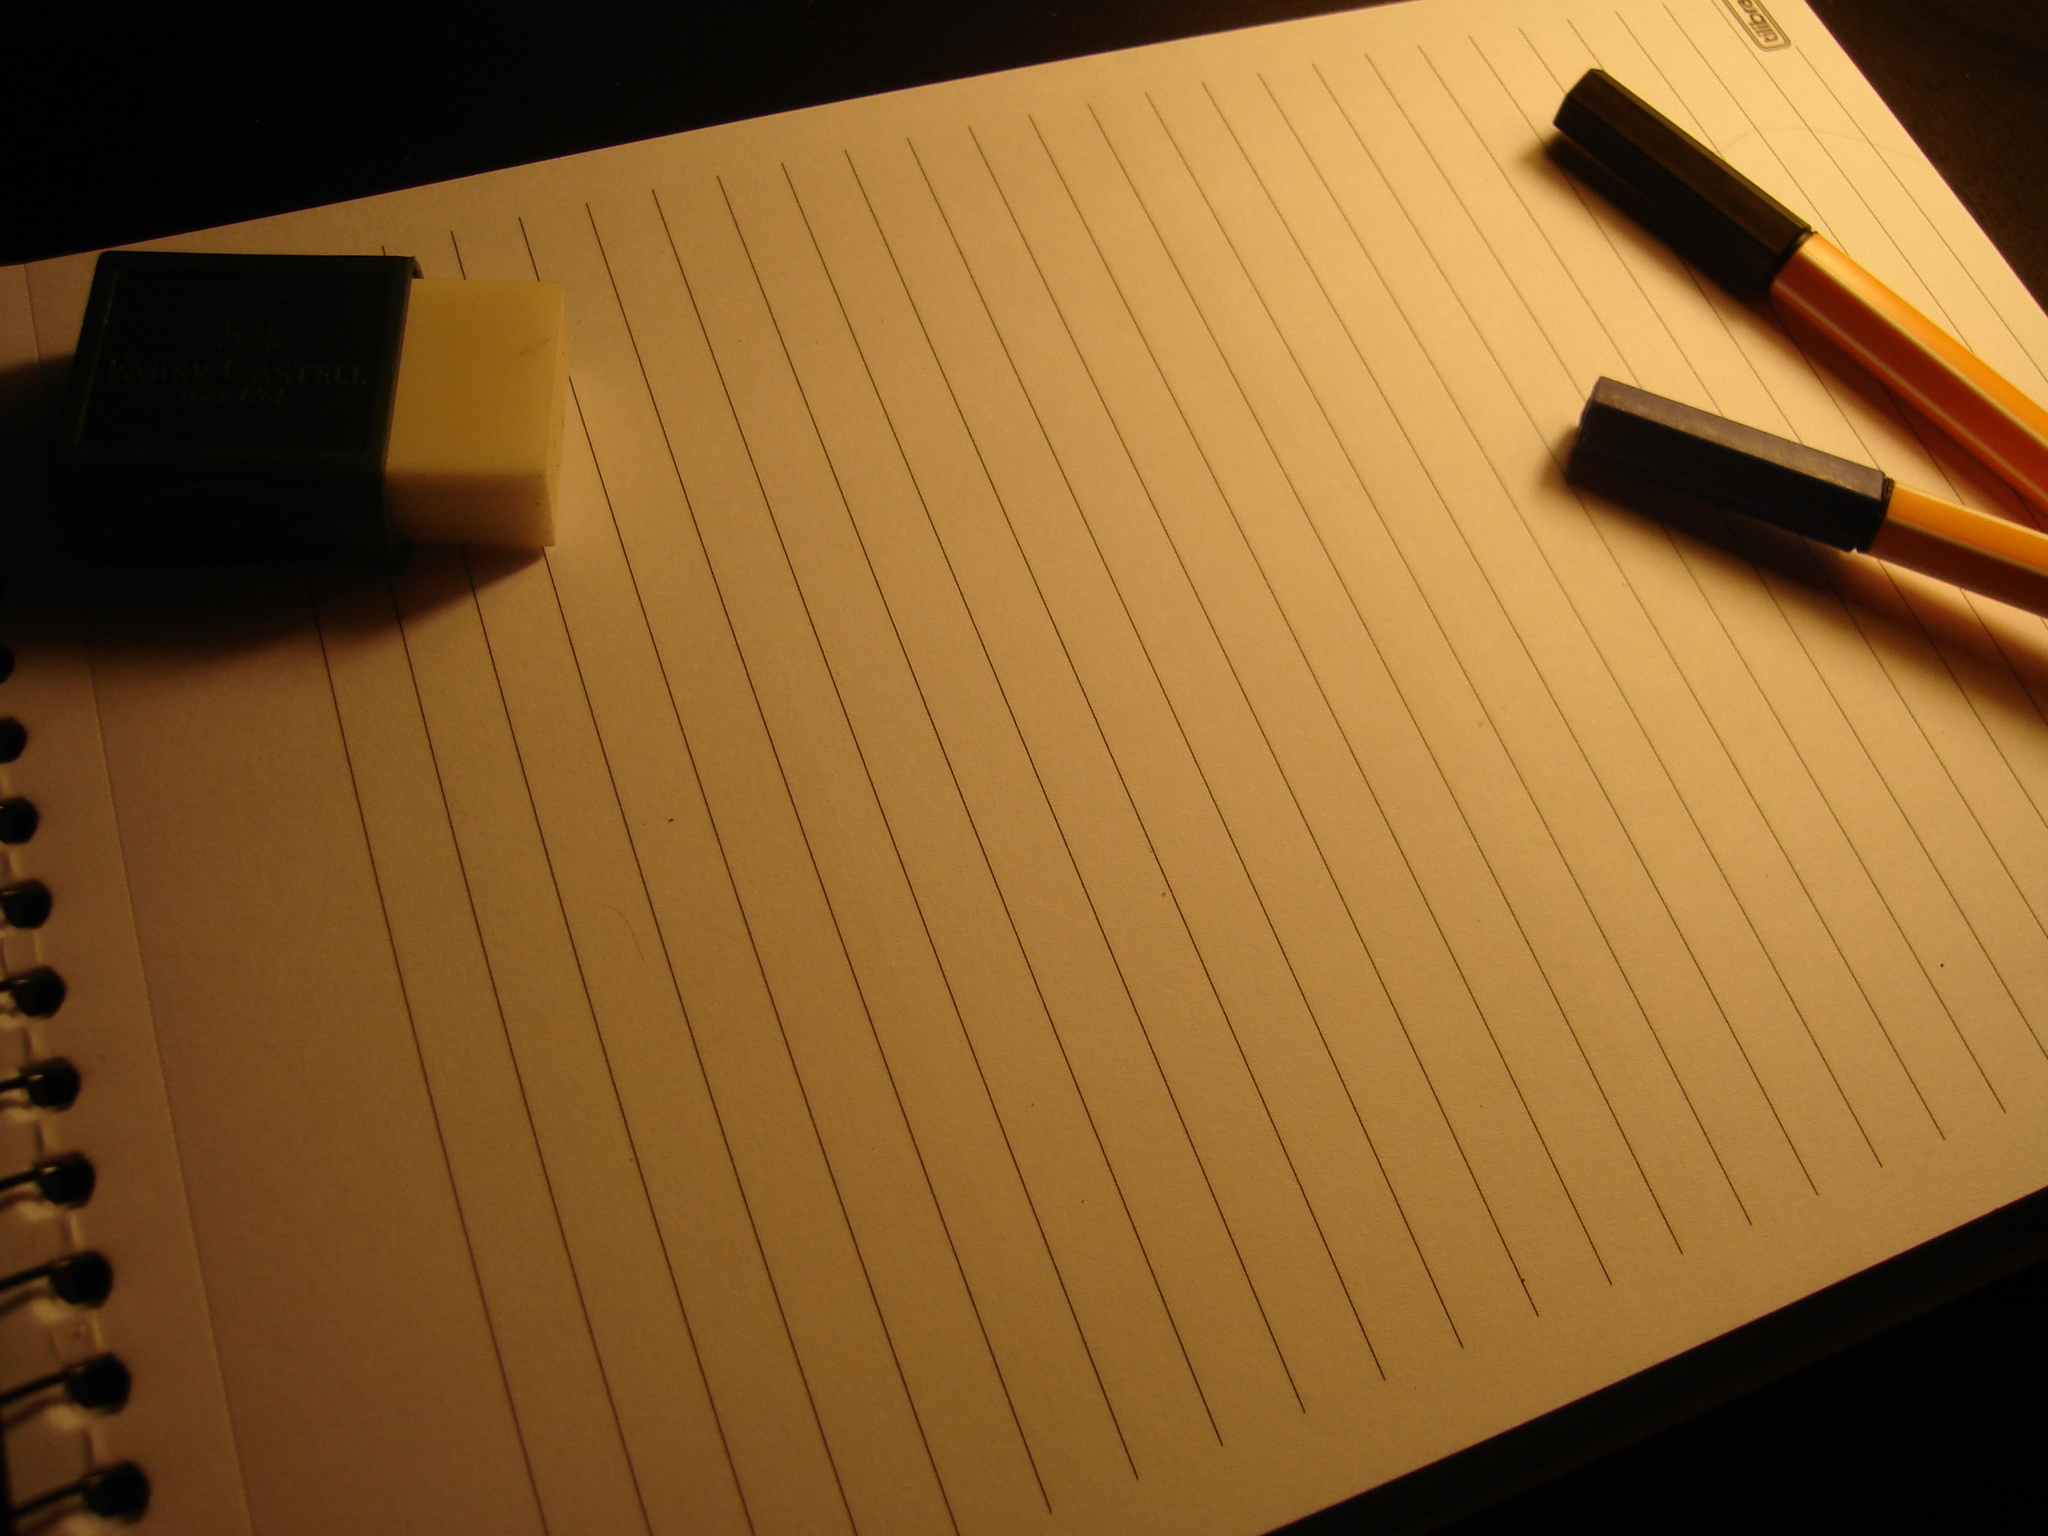 Professionally writing college admissions essay workshop